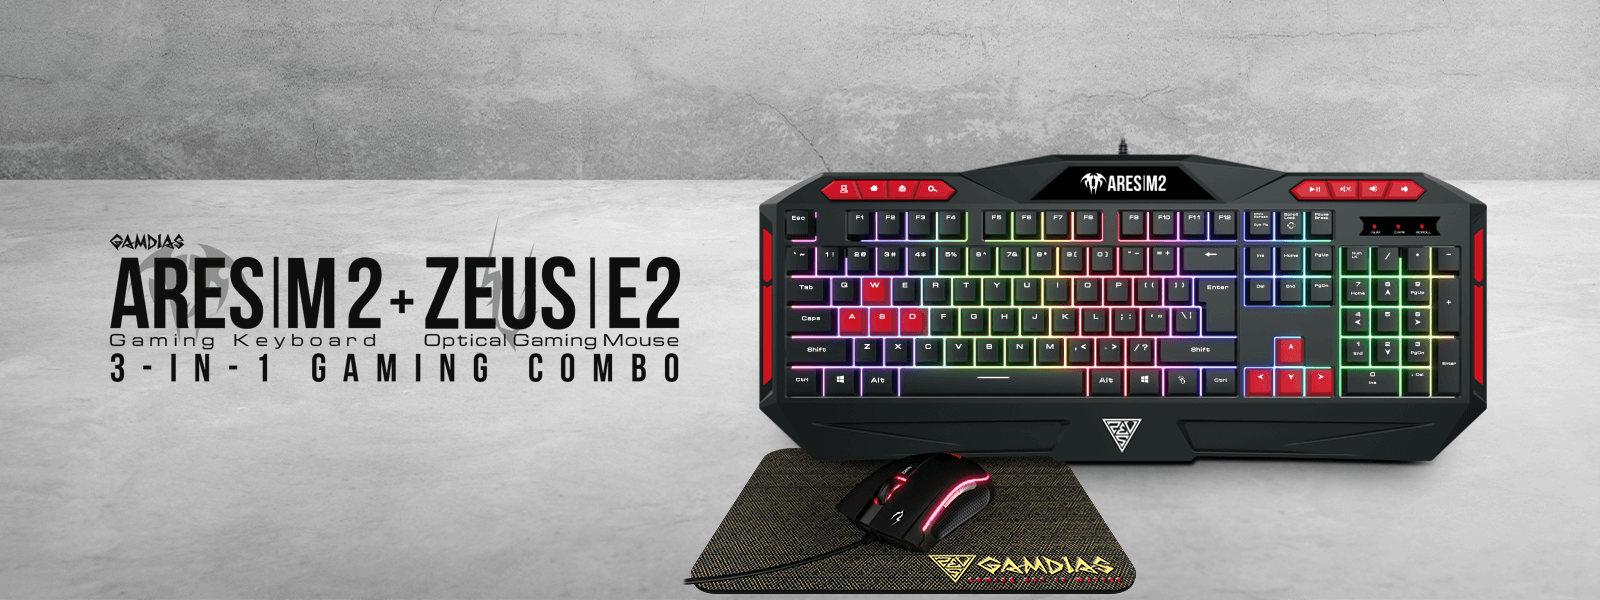 Gamdias ARES M2 Gaming Keyboard, Mouse and Mouse Mat Combo